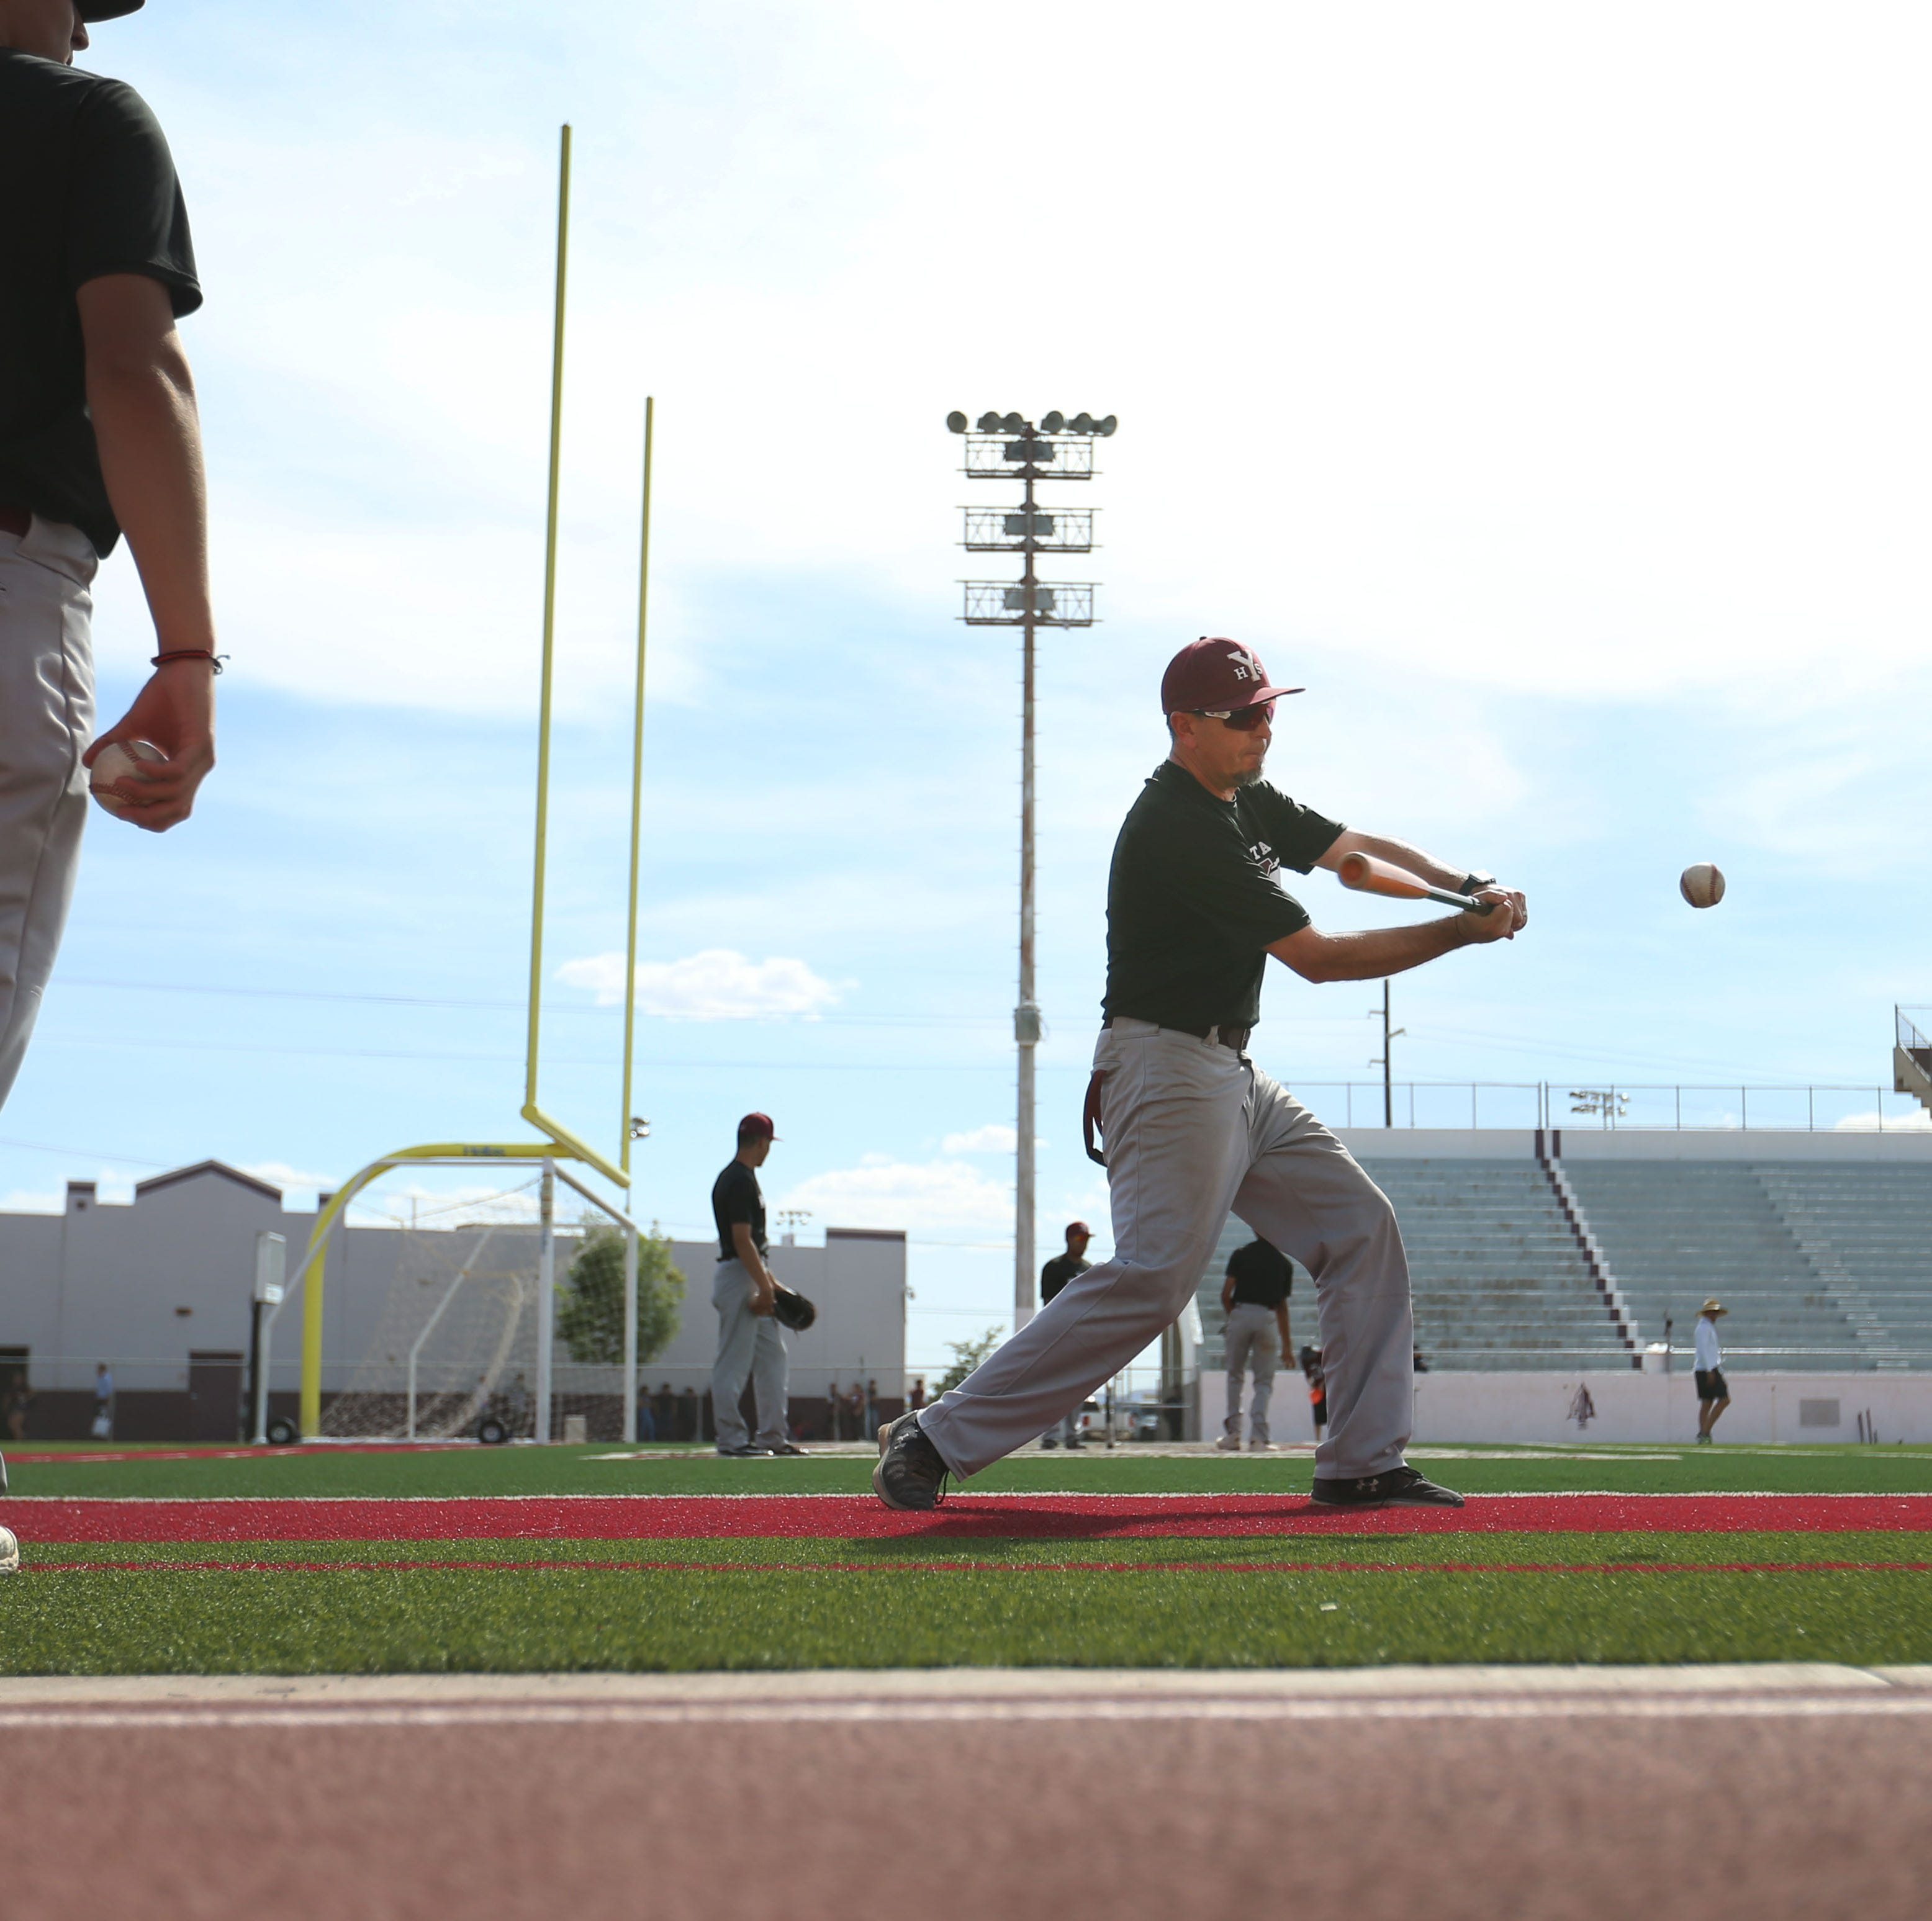 Ysleta baseball coach Rene Solis takes the infielders to the football field to practice grounders Monday, May 6, 2019, in El Paso. Solis had the team practice fielding grounders on the football field since some of the teams they are going to play have turf fields.